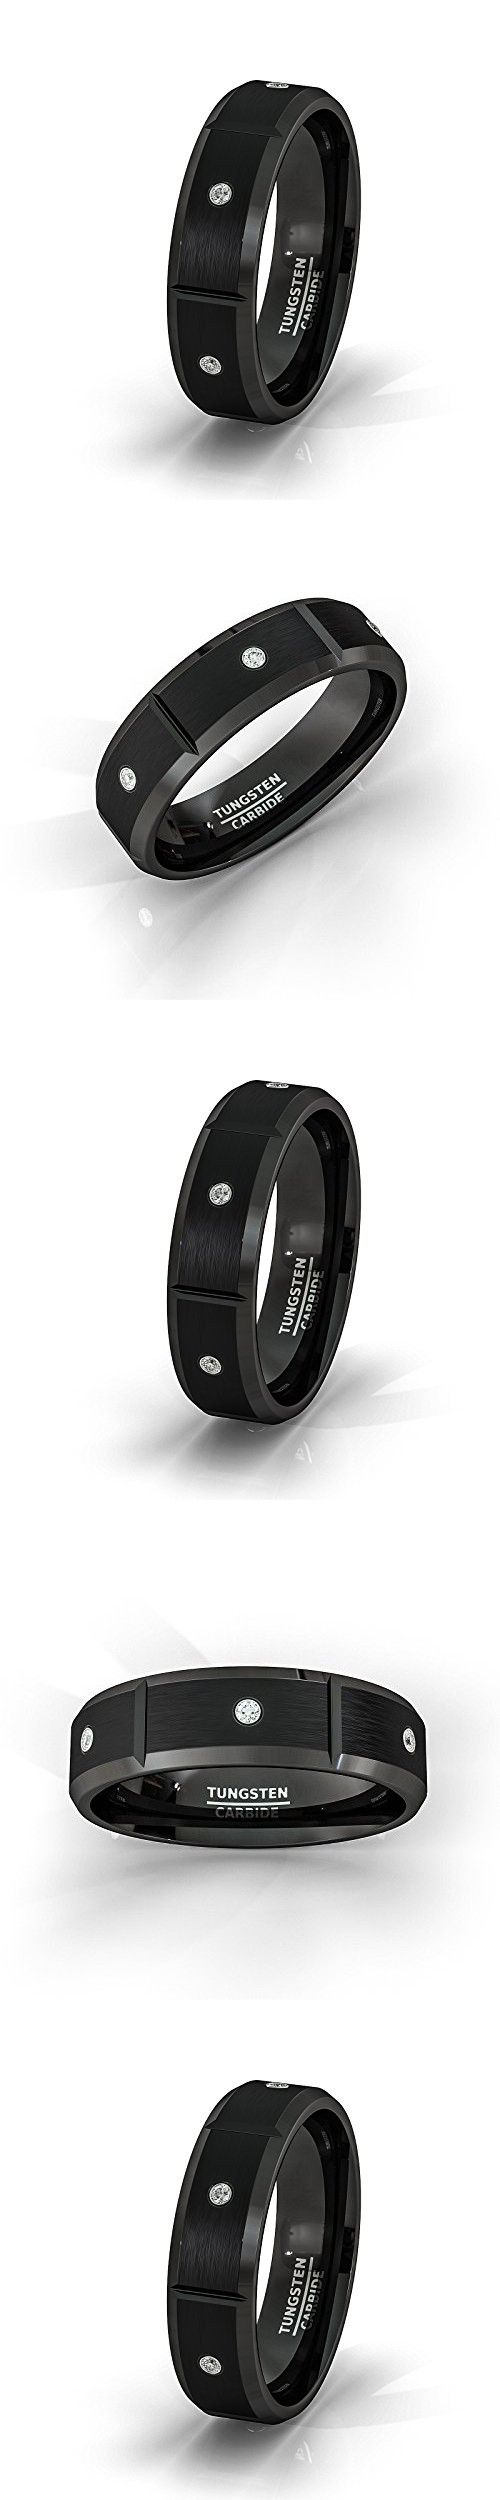 Mens Wedding Band 8mm Black Tungsten Ring Brushed Cubic Zircon Beveled Edges Comfort Fit Tu42 (7.5)